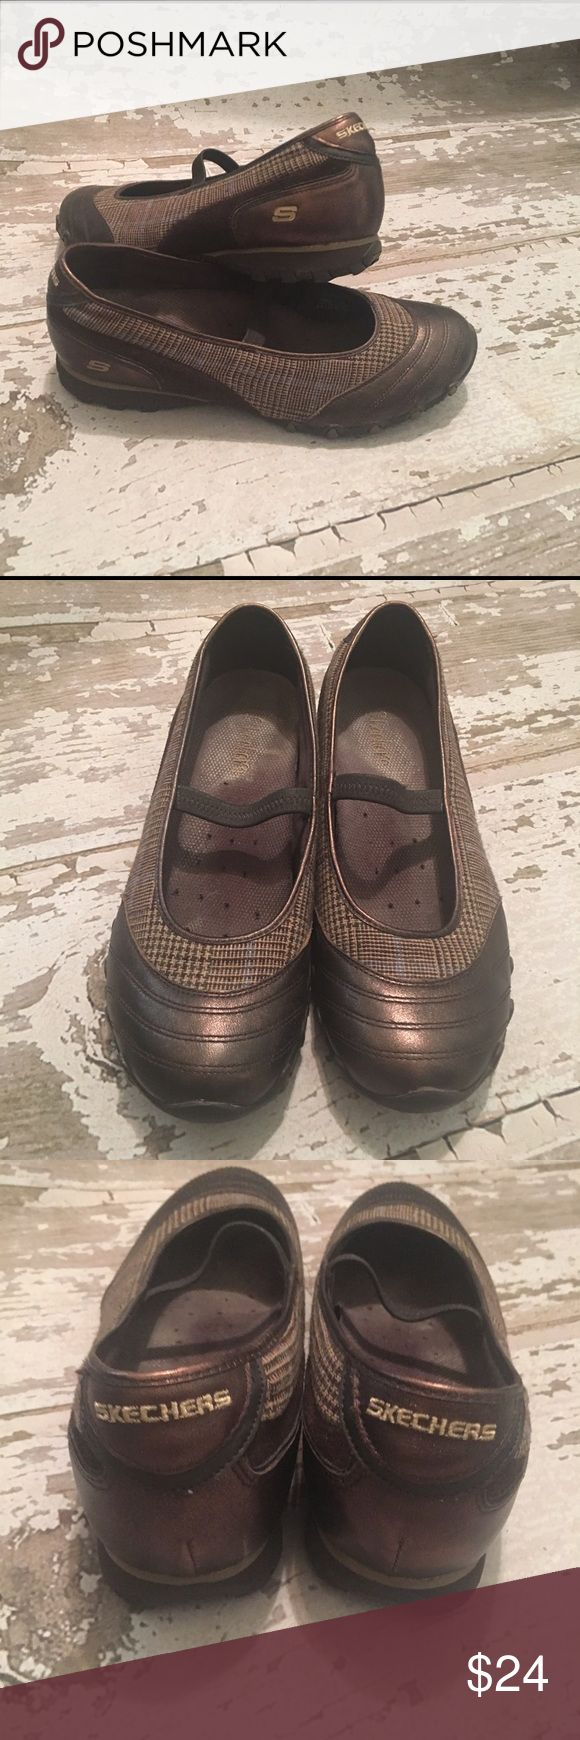 💫New Listing💫Skechers Sneakers Size 9 Gently Preloved Size 9 Skechers; Mary Jane Flats. Plaid Bronze/Brown/Cream colors. Perfect for Fall 🍂🍁 No Box Included. Remember to Bundle & Save.🛍💕🌟 Skechers Shoes Flats & Loafers